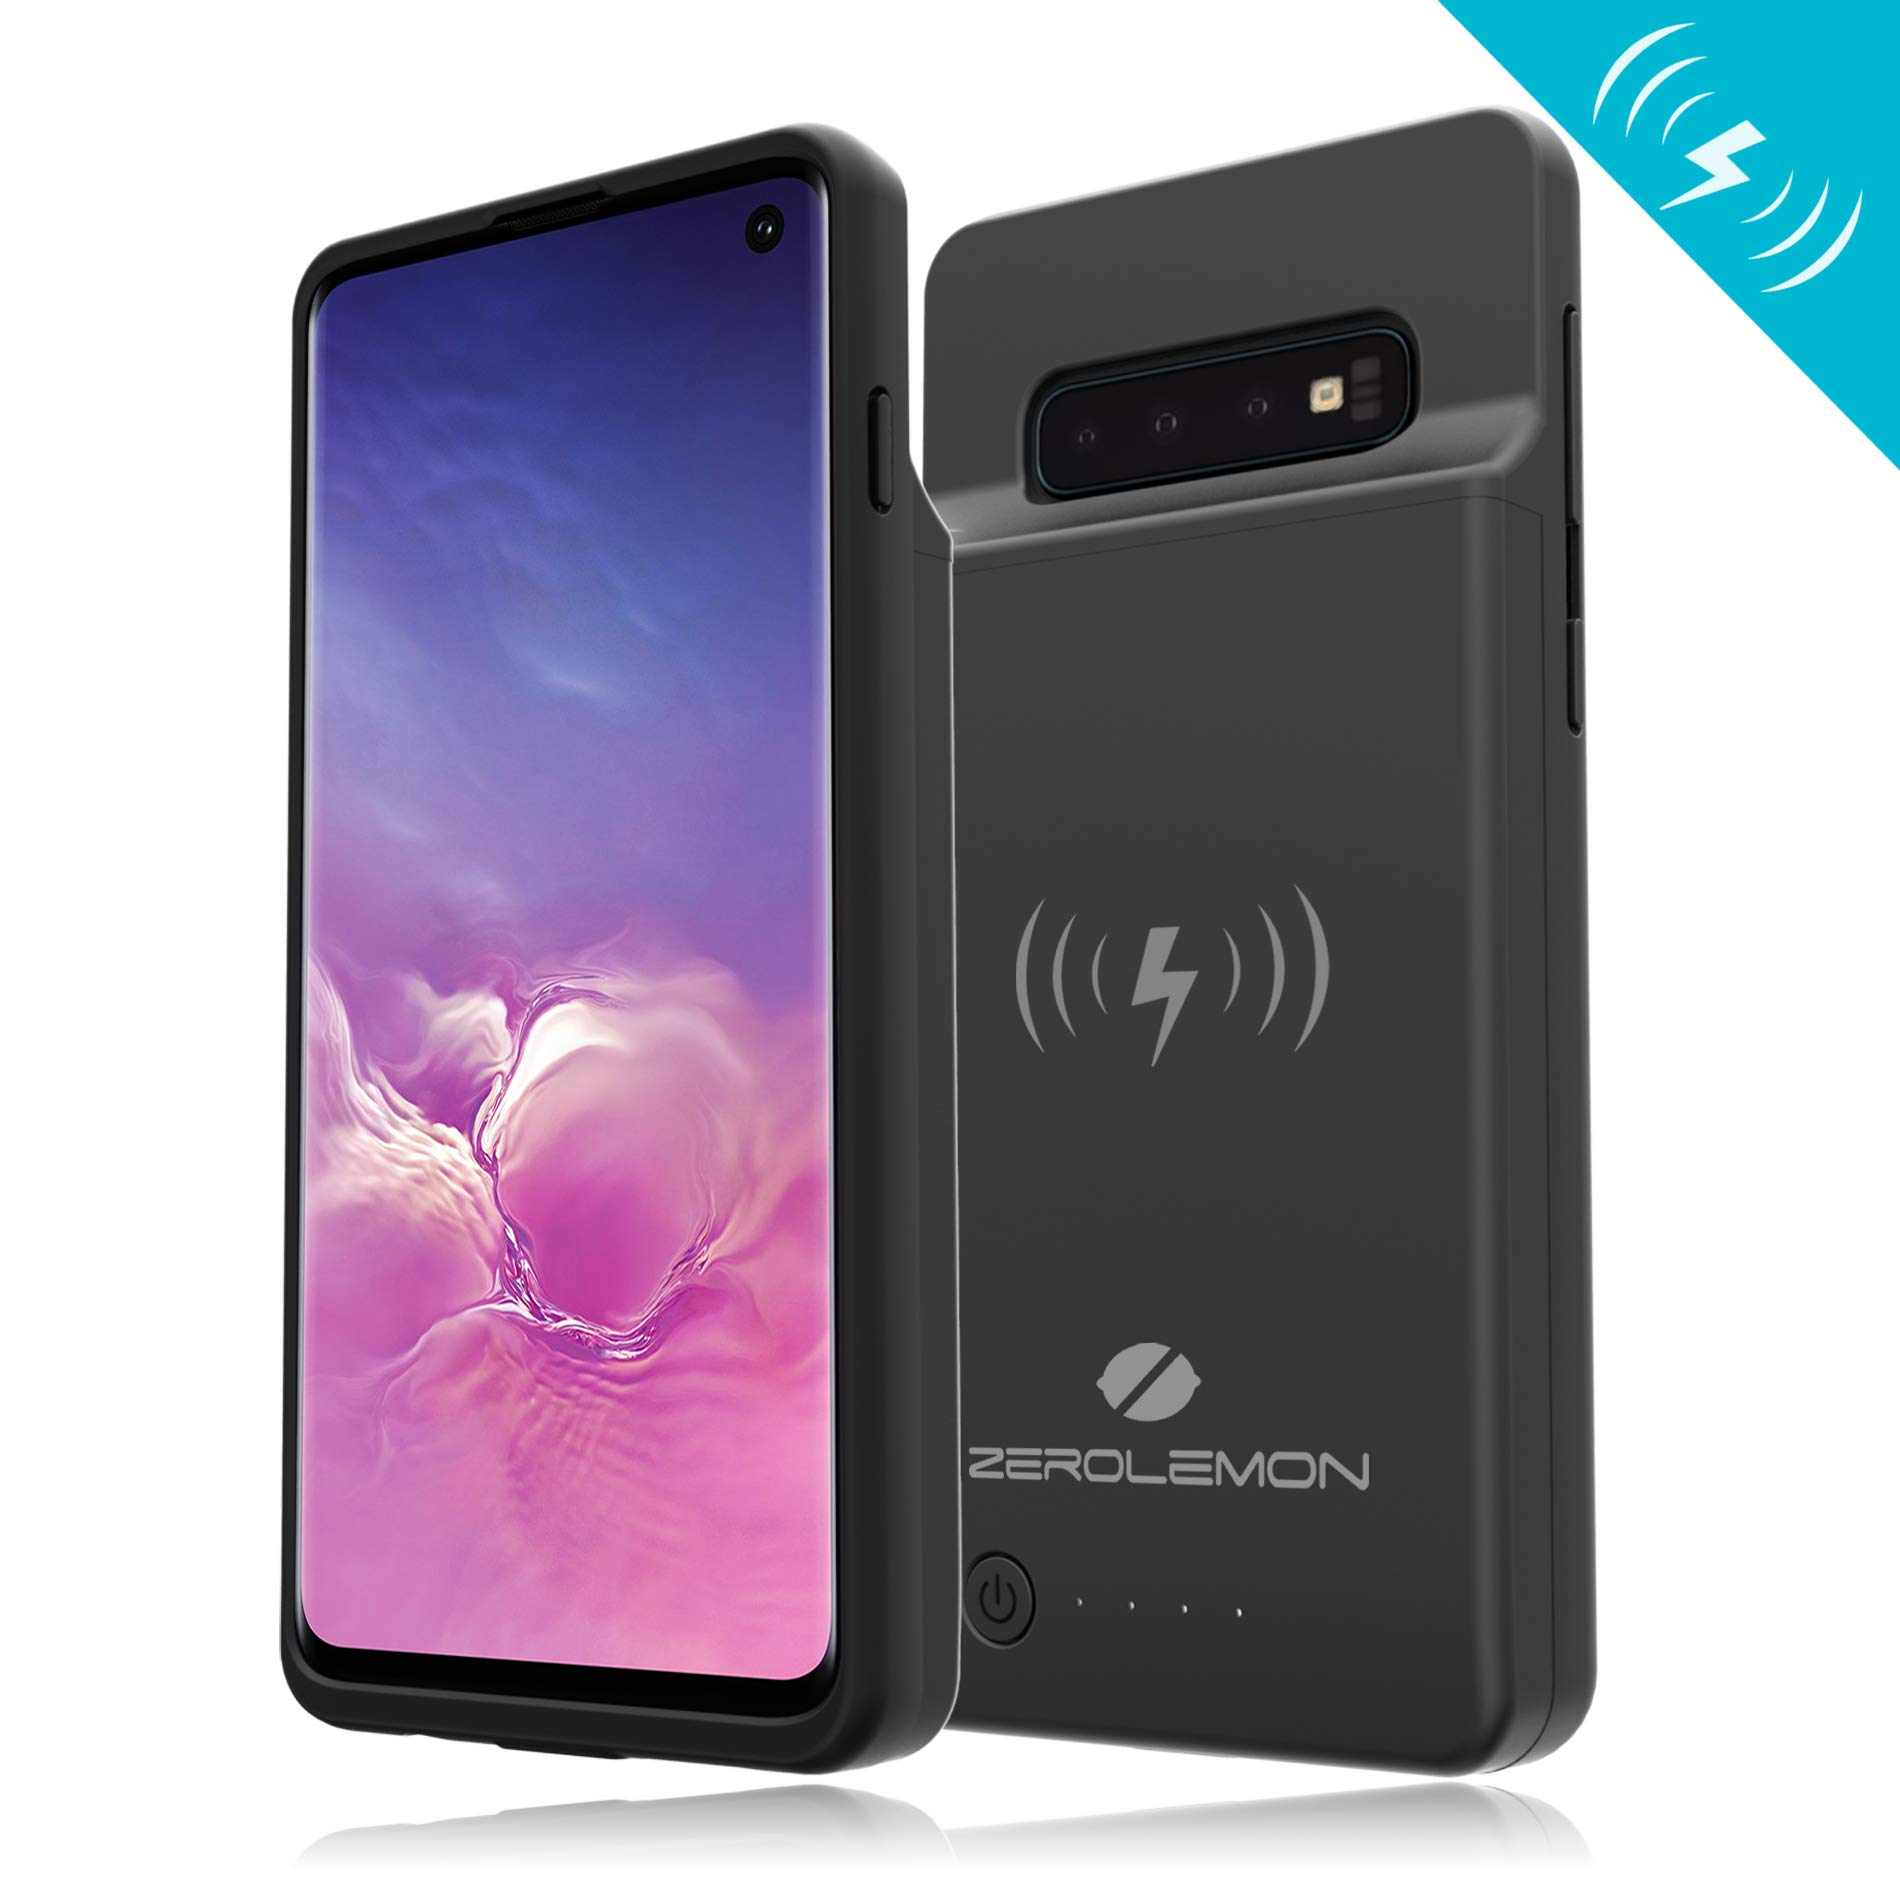 [Upgraded] Galaxy S10 Extended Battery Case with Qi Wireless Charging, ZeroLemon Slim Power 5000mAh Rechargeable Battery Charger with Full Edge Protection for Galaxy S10 - Black by ZEROLEMON